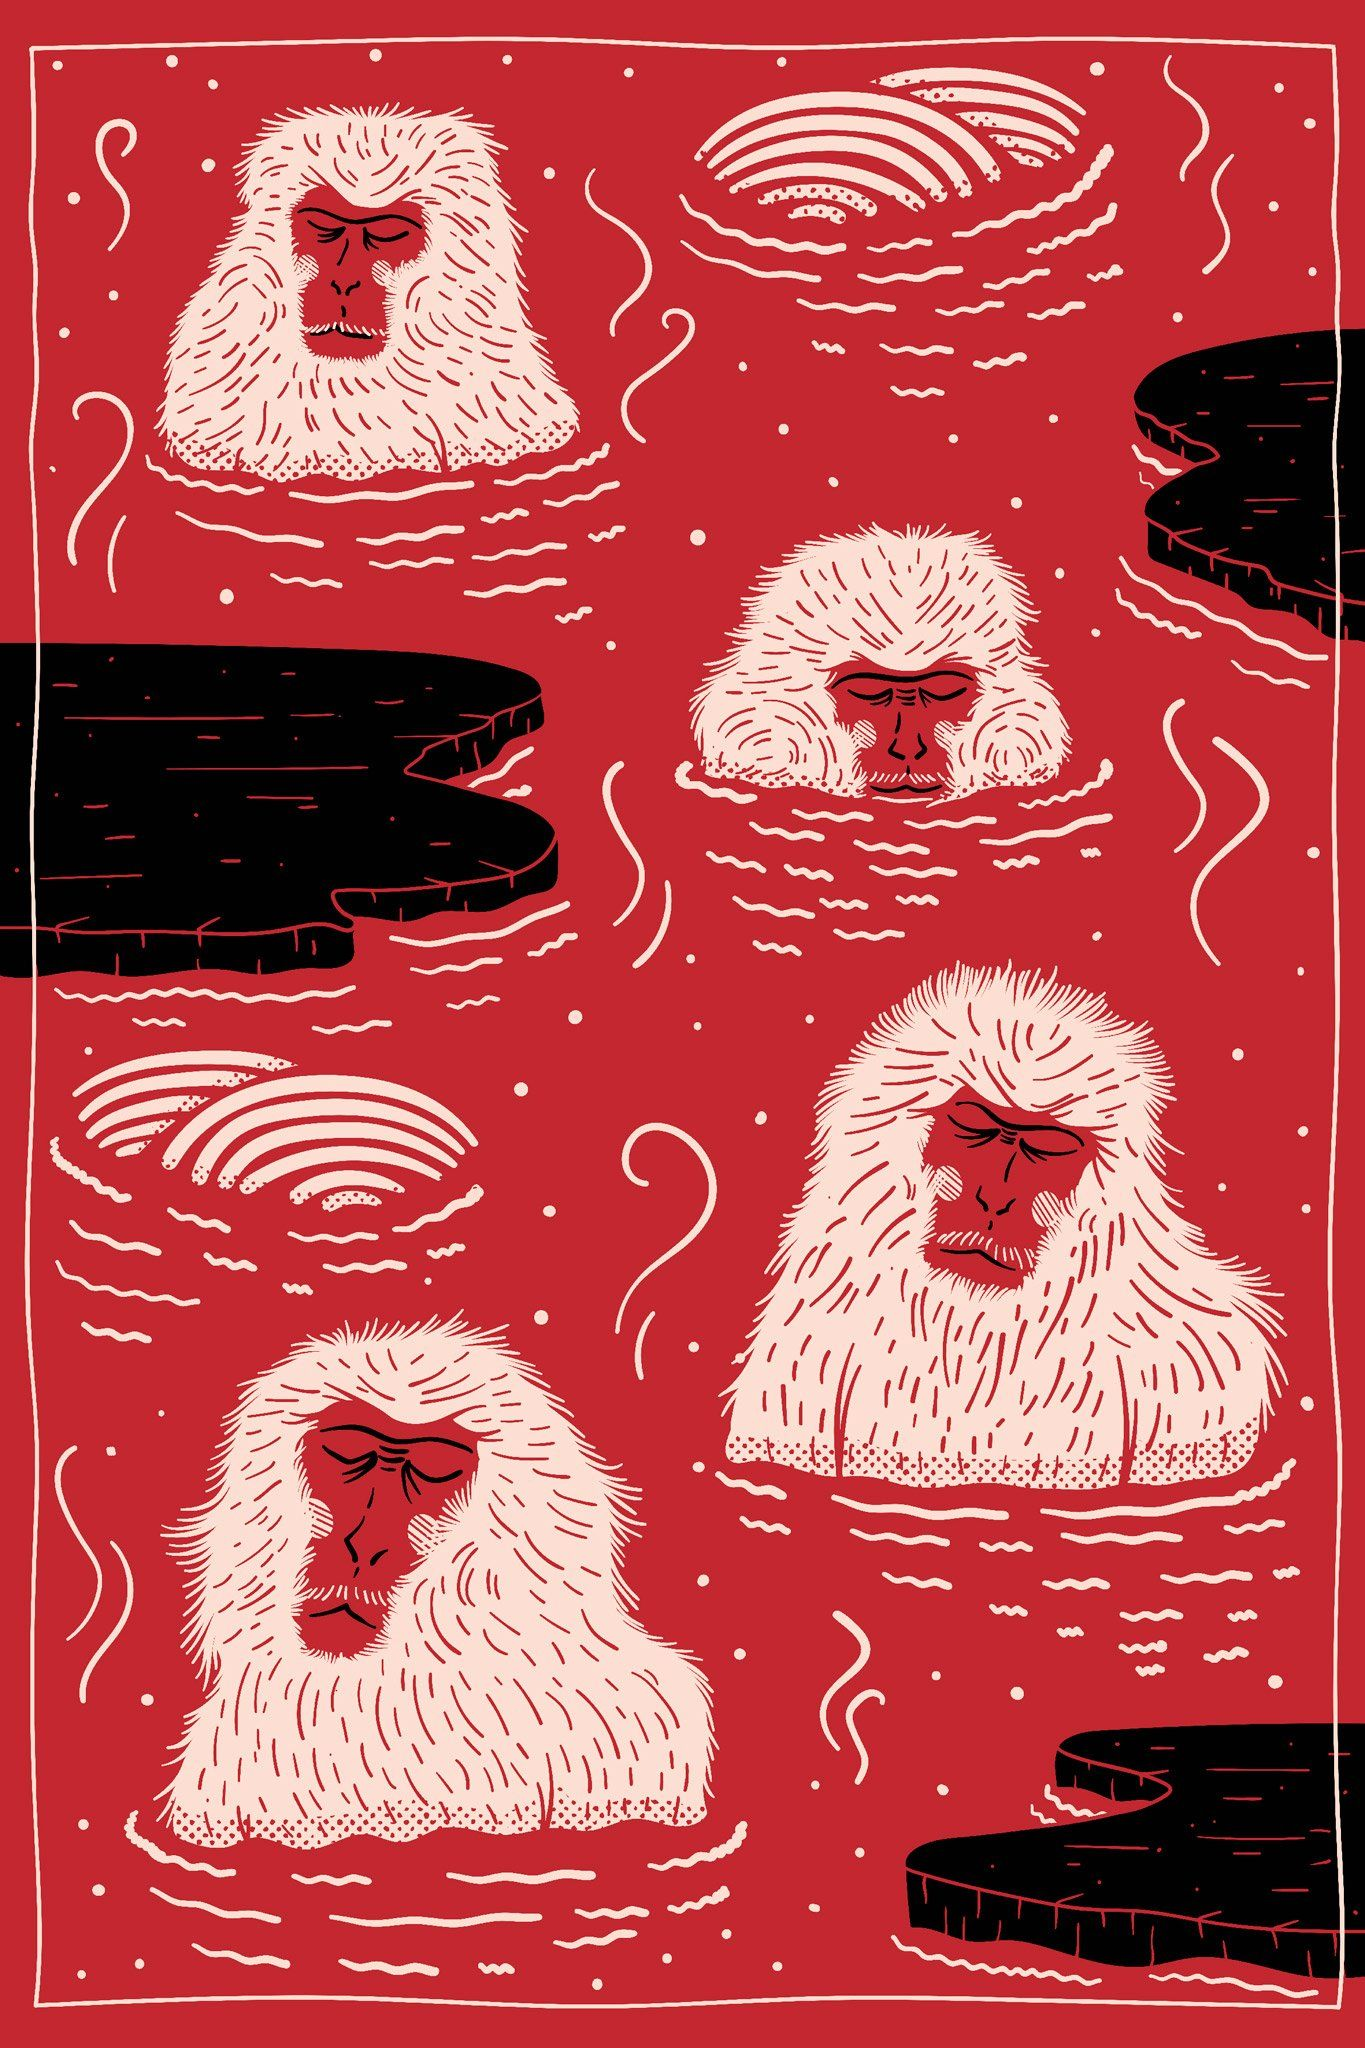 Mooois Playful Indigo Macaque Rug Depicts Monkeys Relaxing in Hot Springs